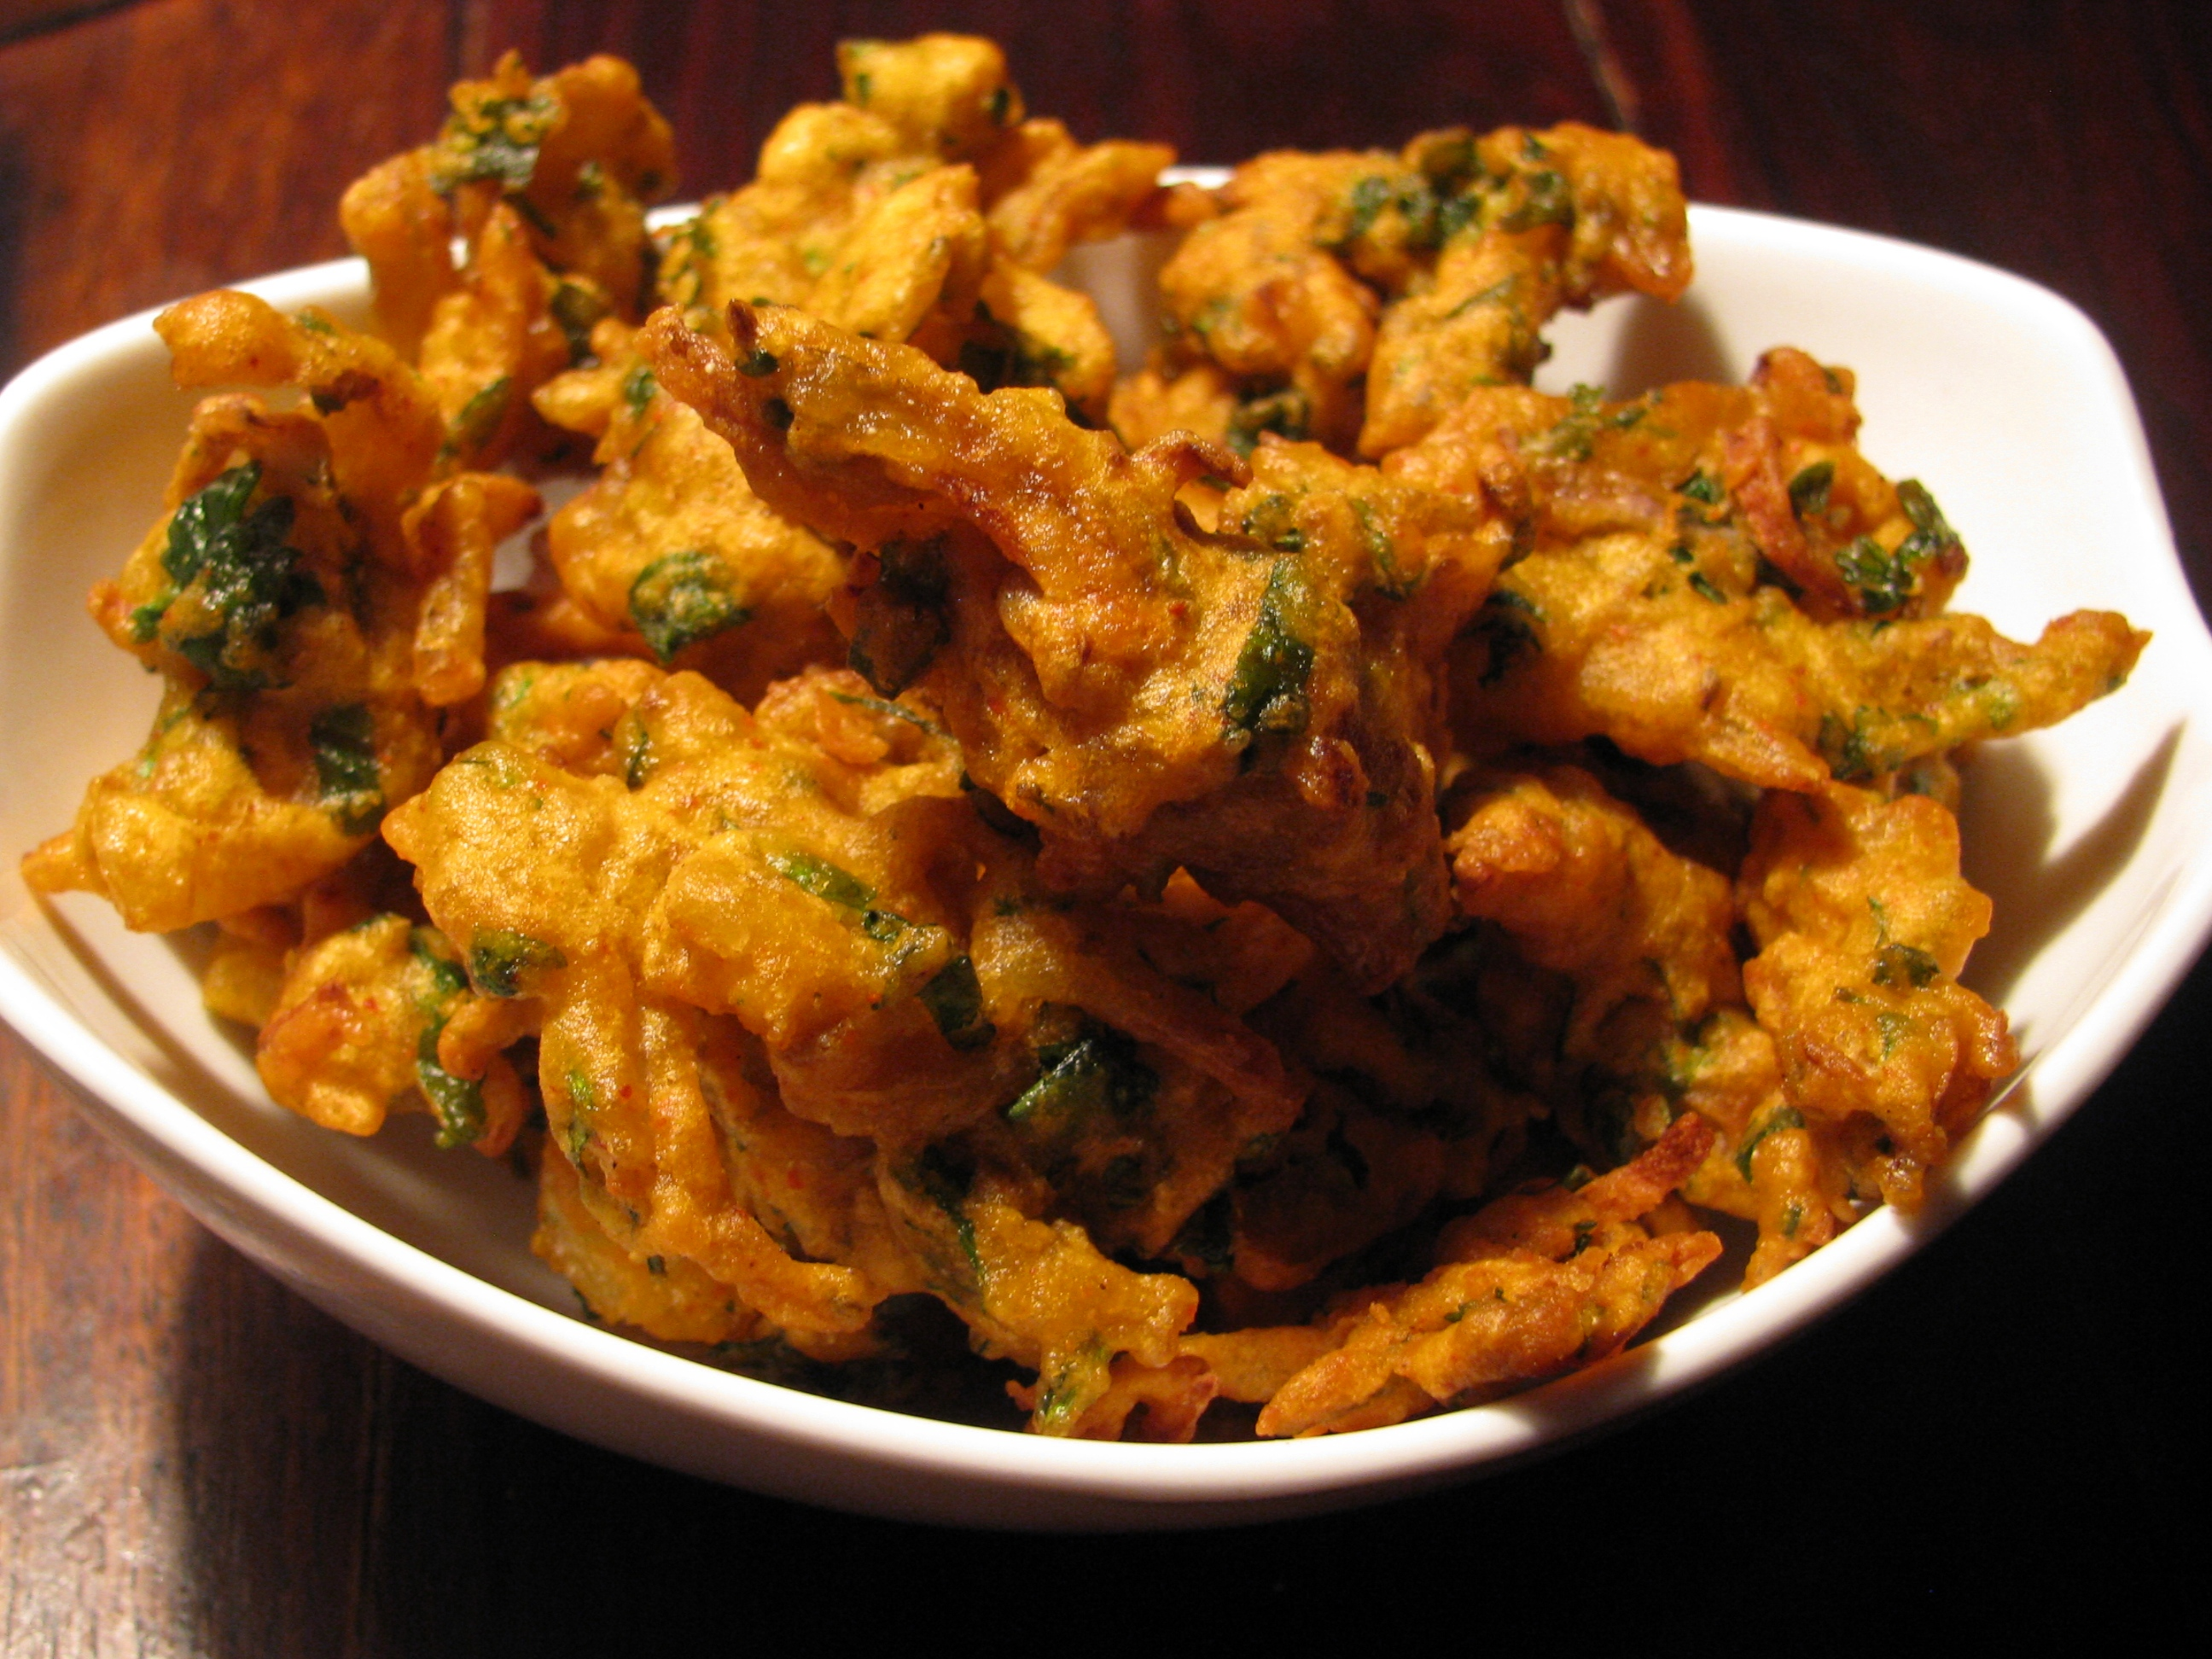 light Recipe, healthy and nutritious dish